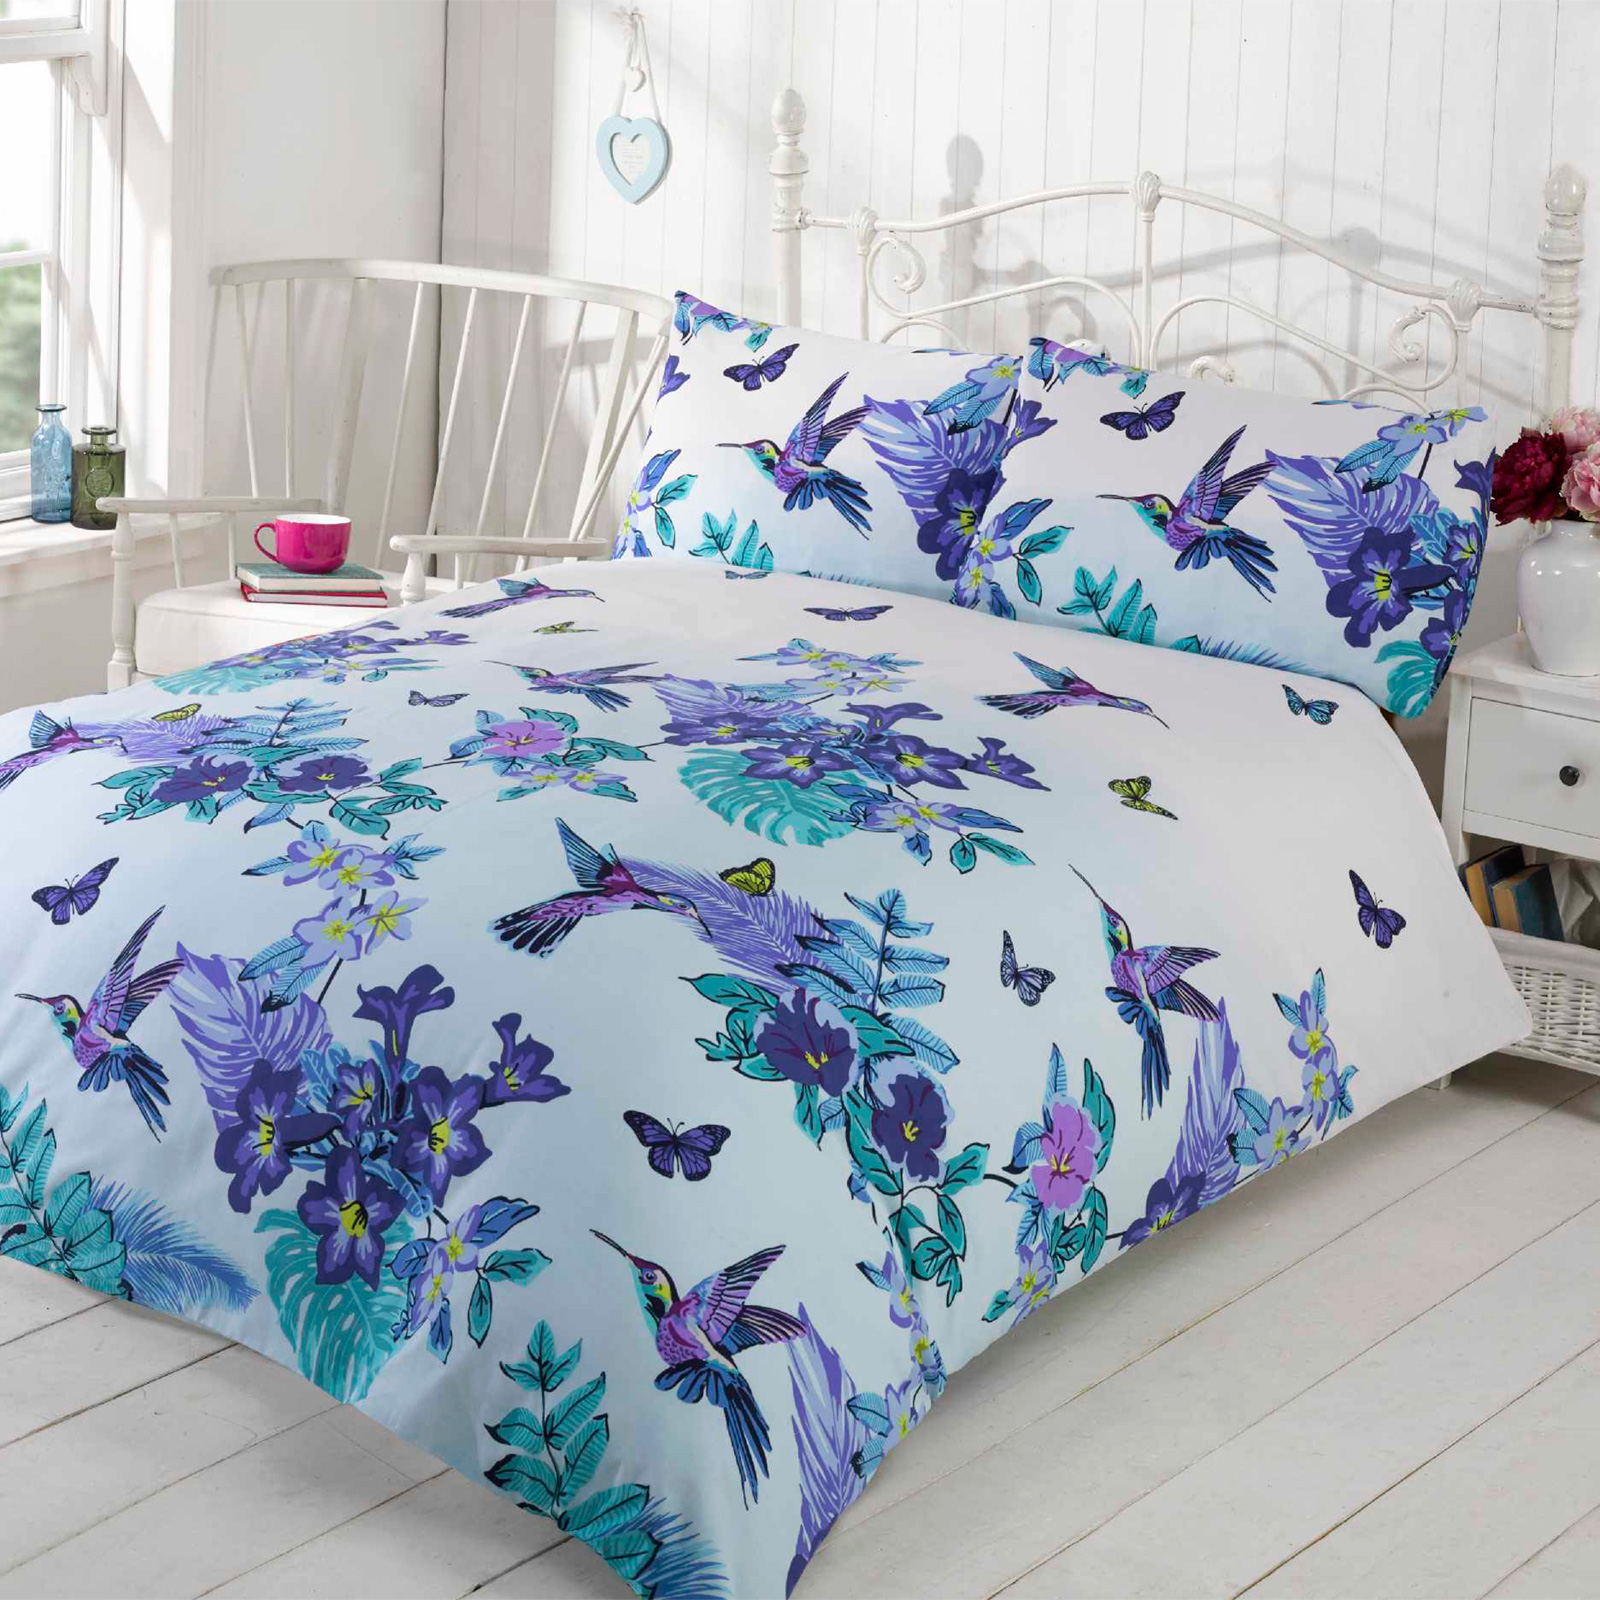 Pretty Bed Covers Tropical Nature Humming Birds Duvet Cover Set With Pretty